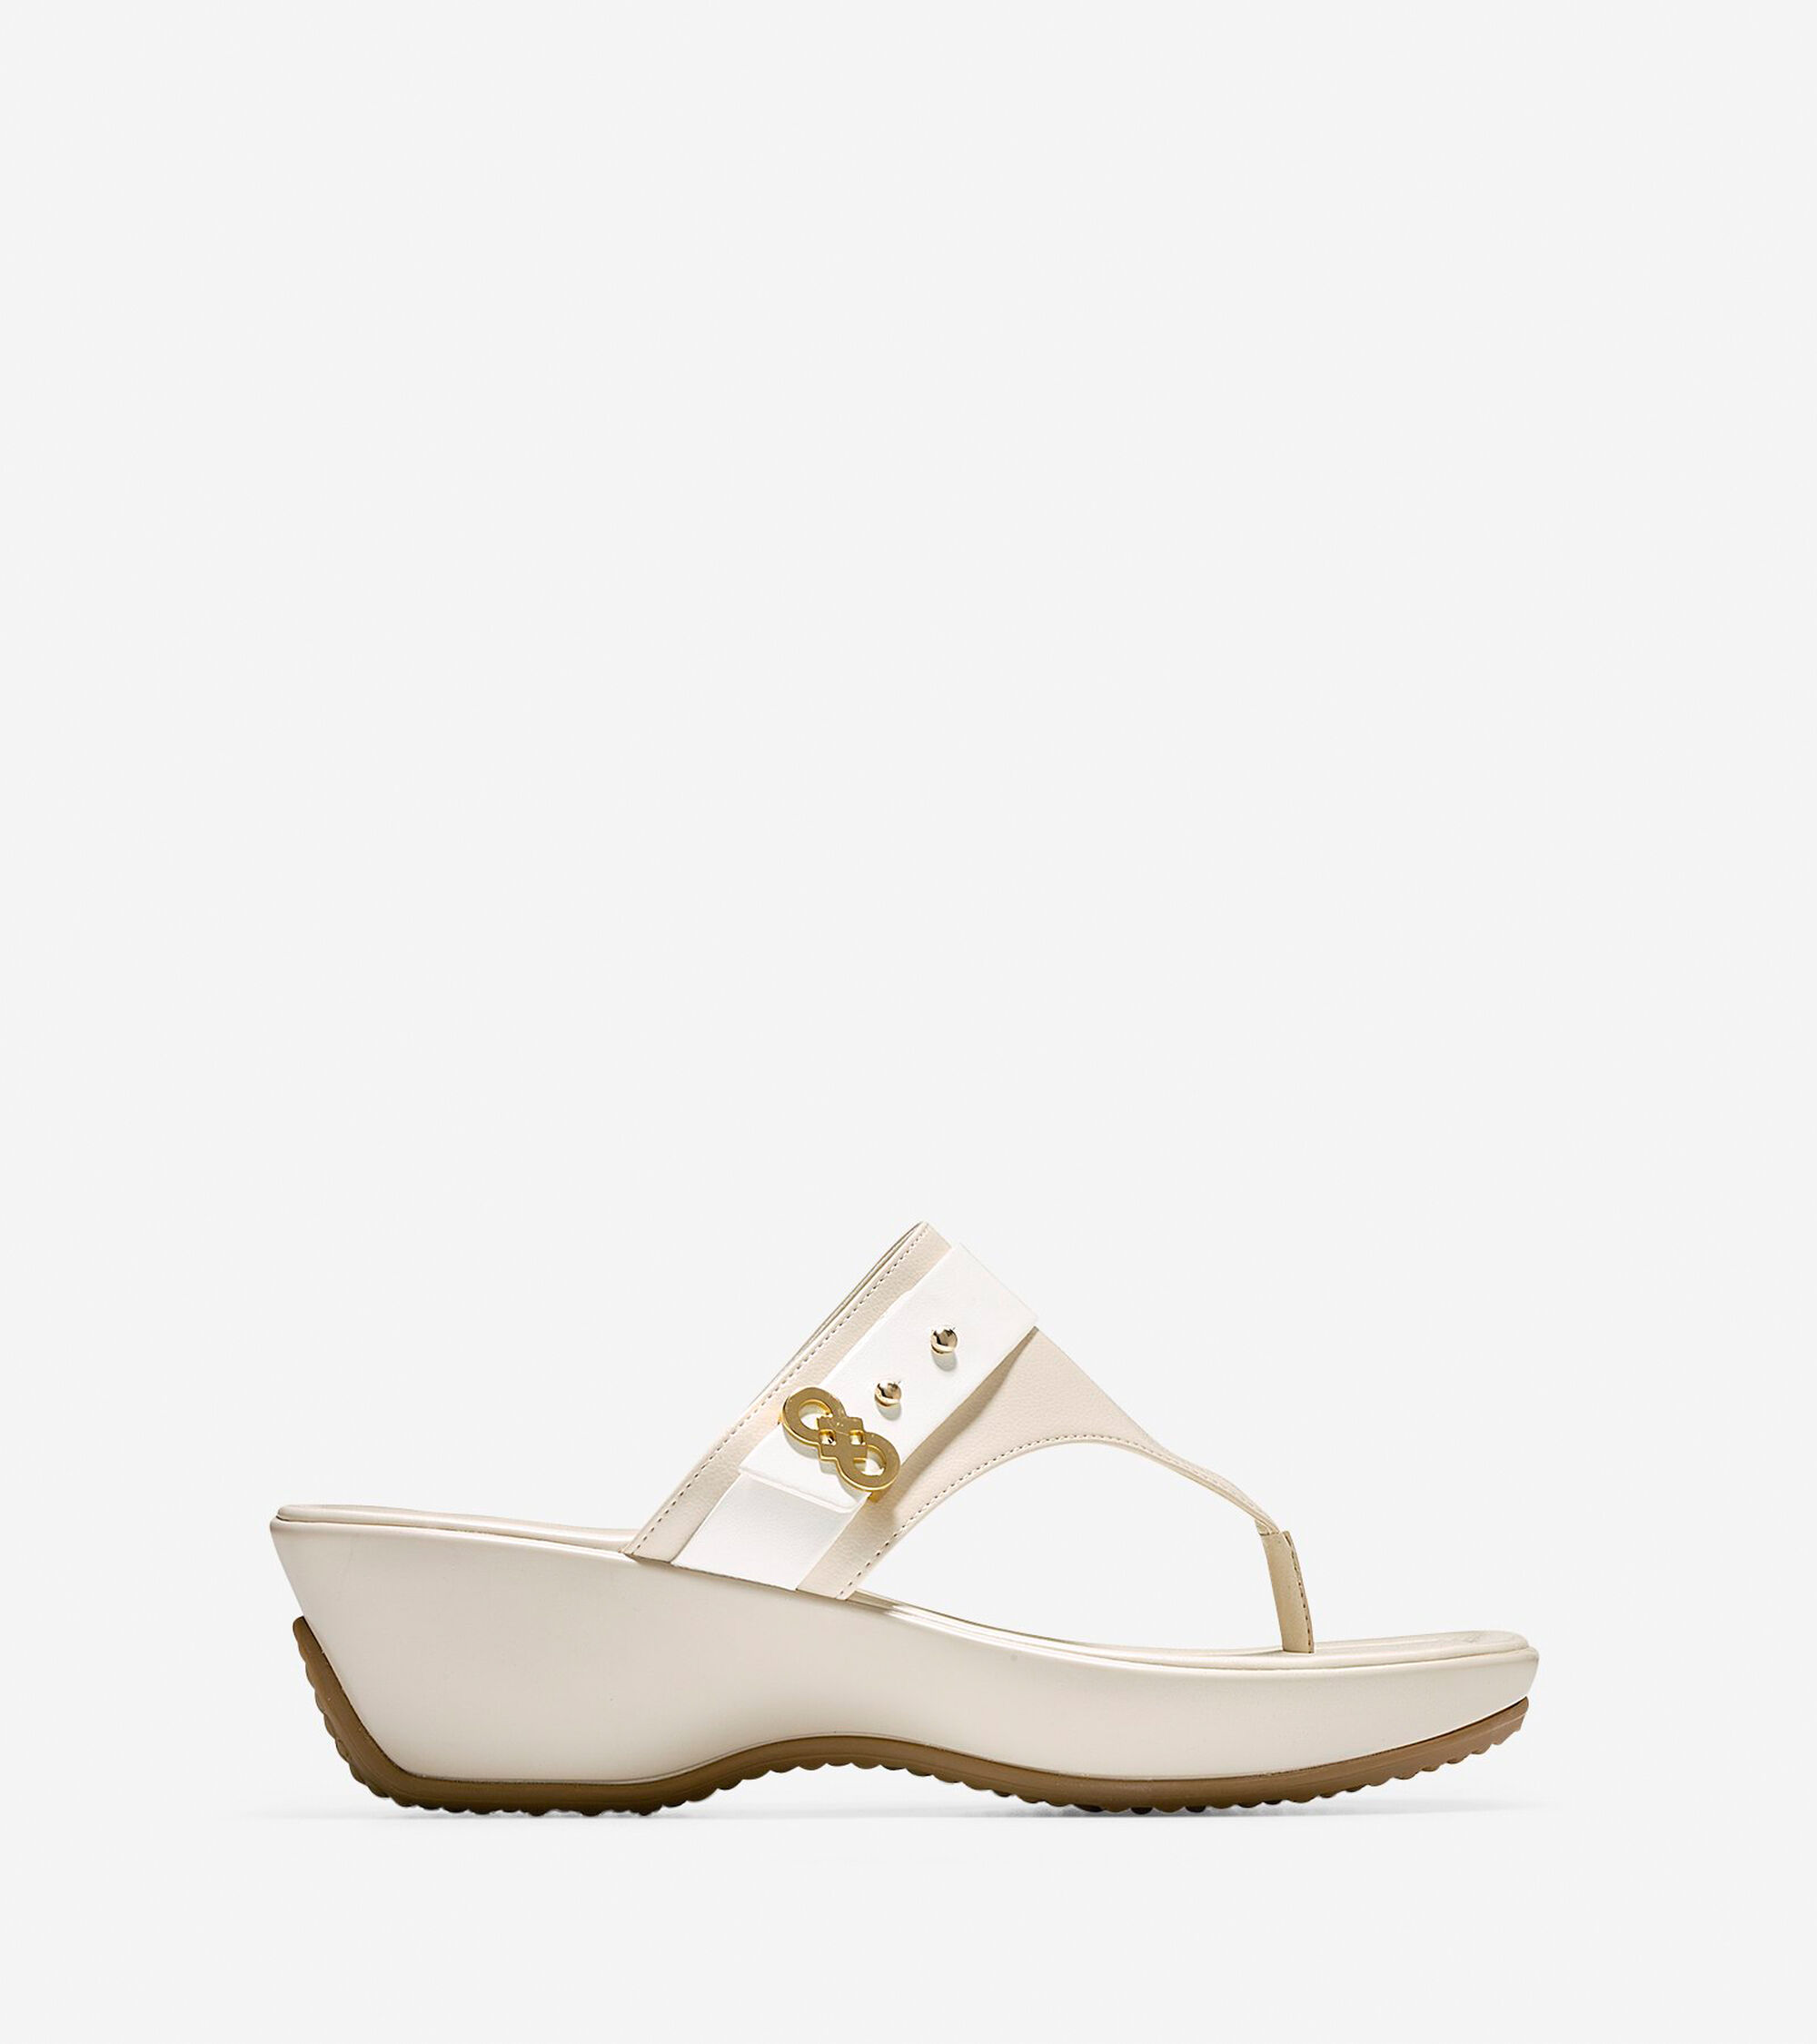 Shoes > Margate Wedge (55mm)